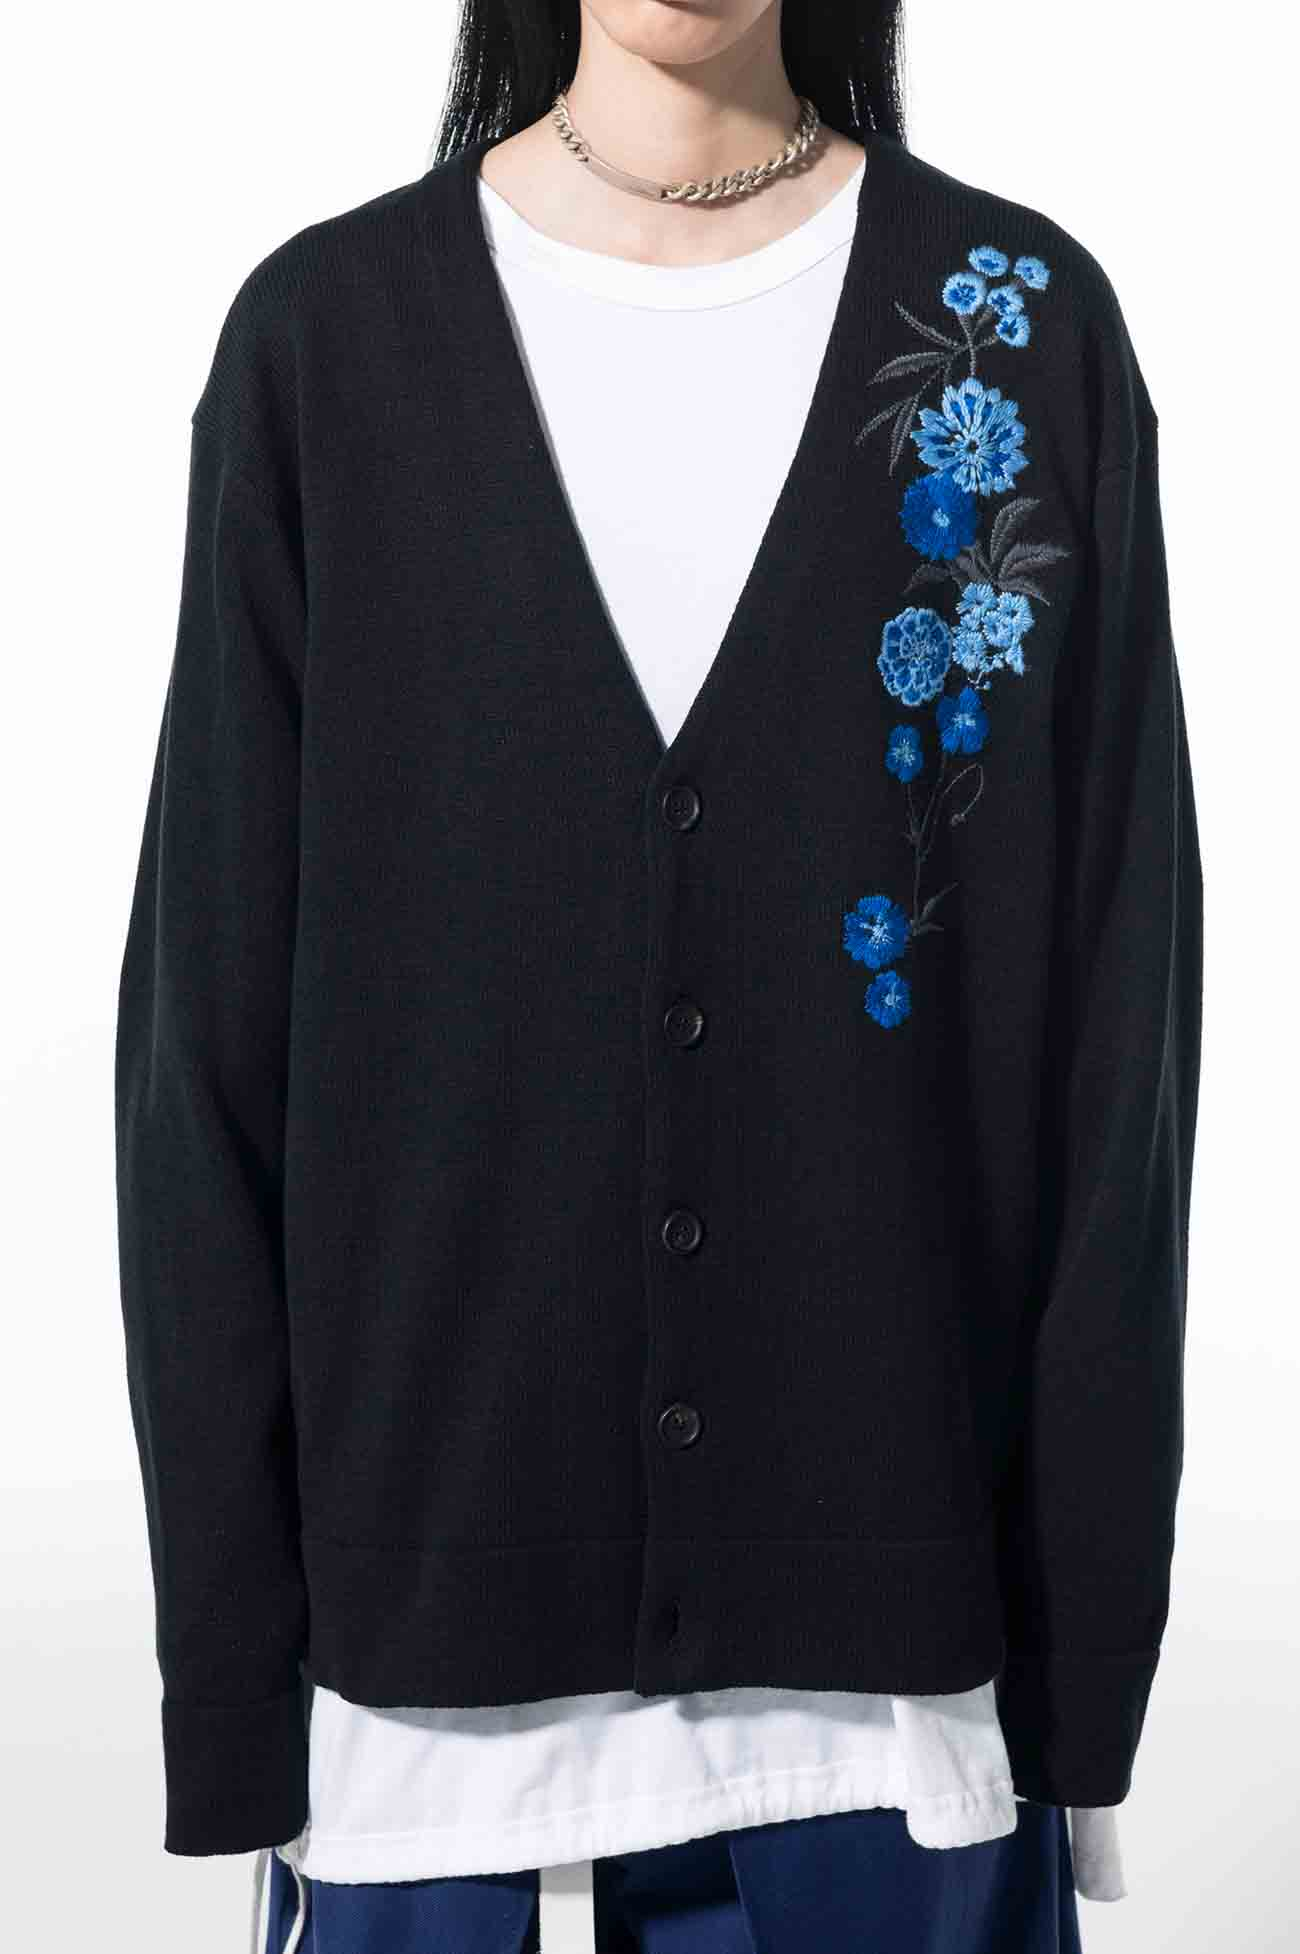 Cotton Acrylic Blue Flower Embroidery Cardigan